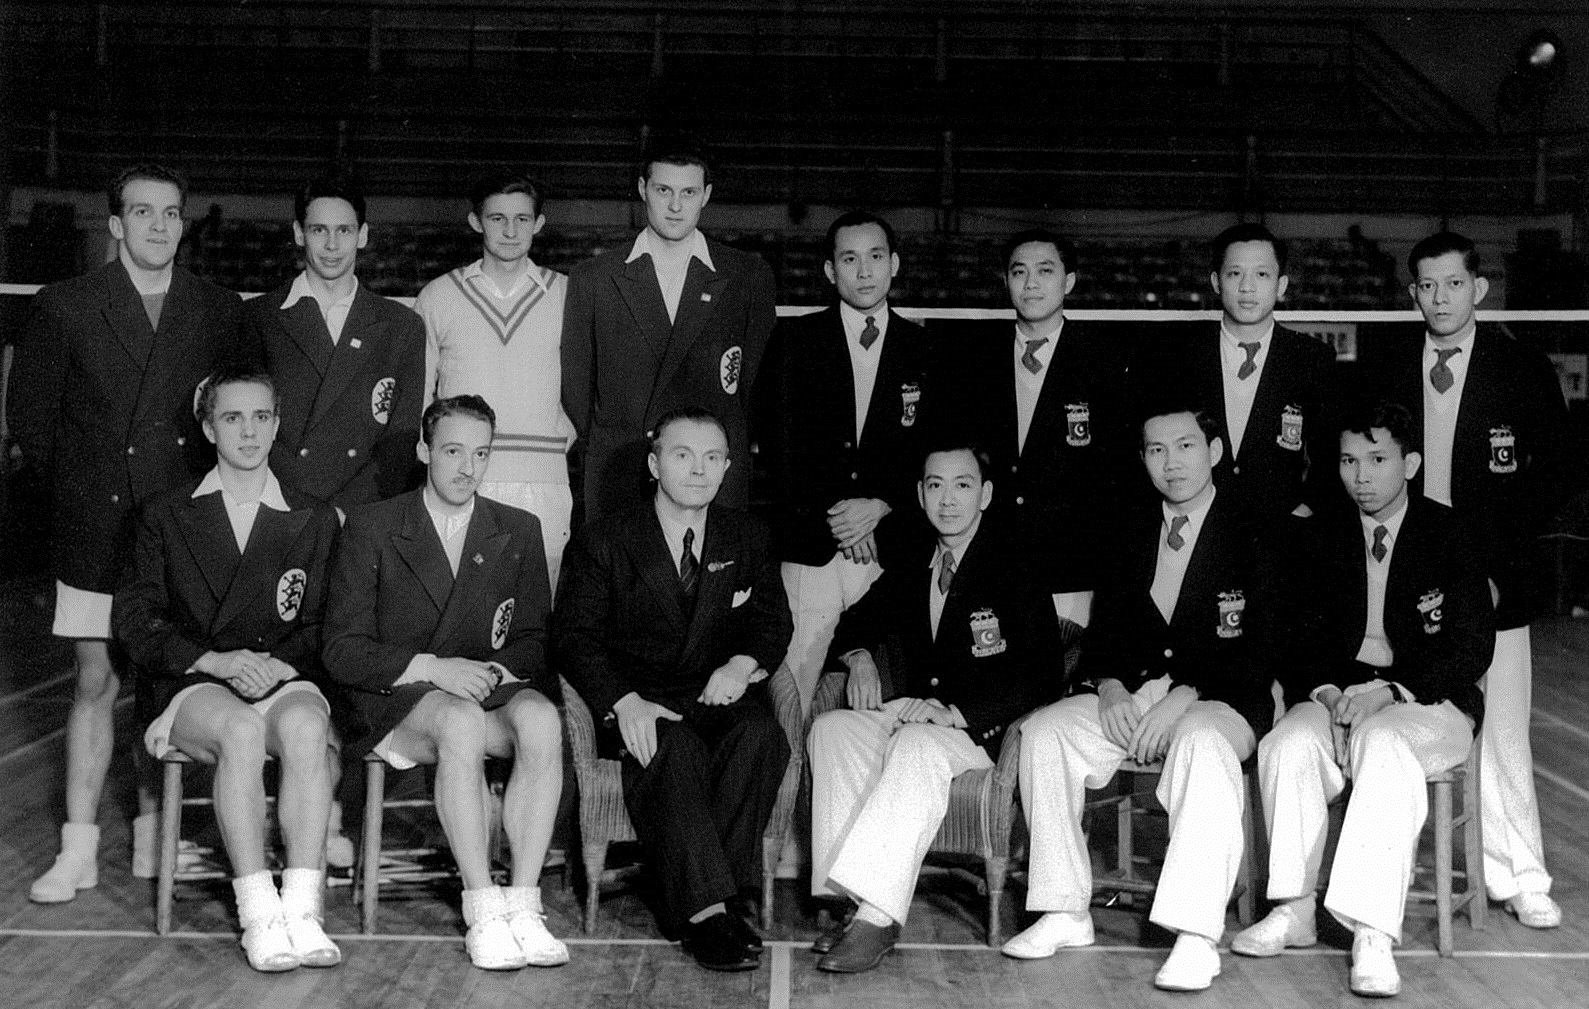 Thomas cup finalists denmark + malaya - preston, england - feb 25-26 1949 - ong poh lim is 5th from l standing - picture by arthur winter